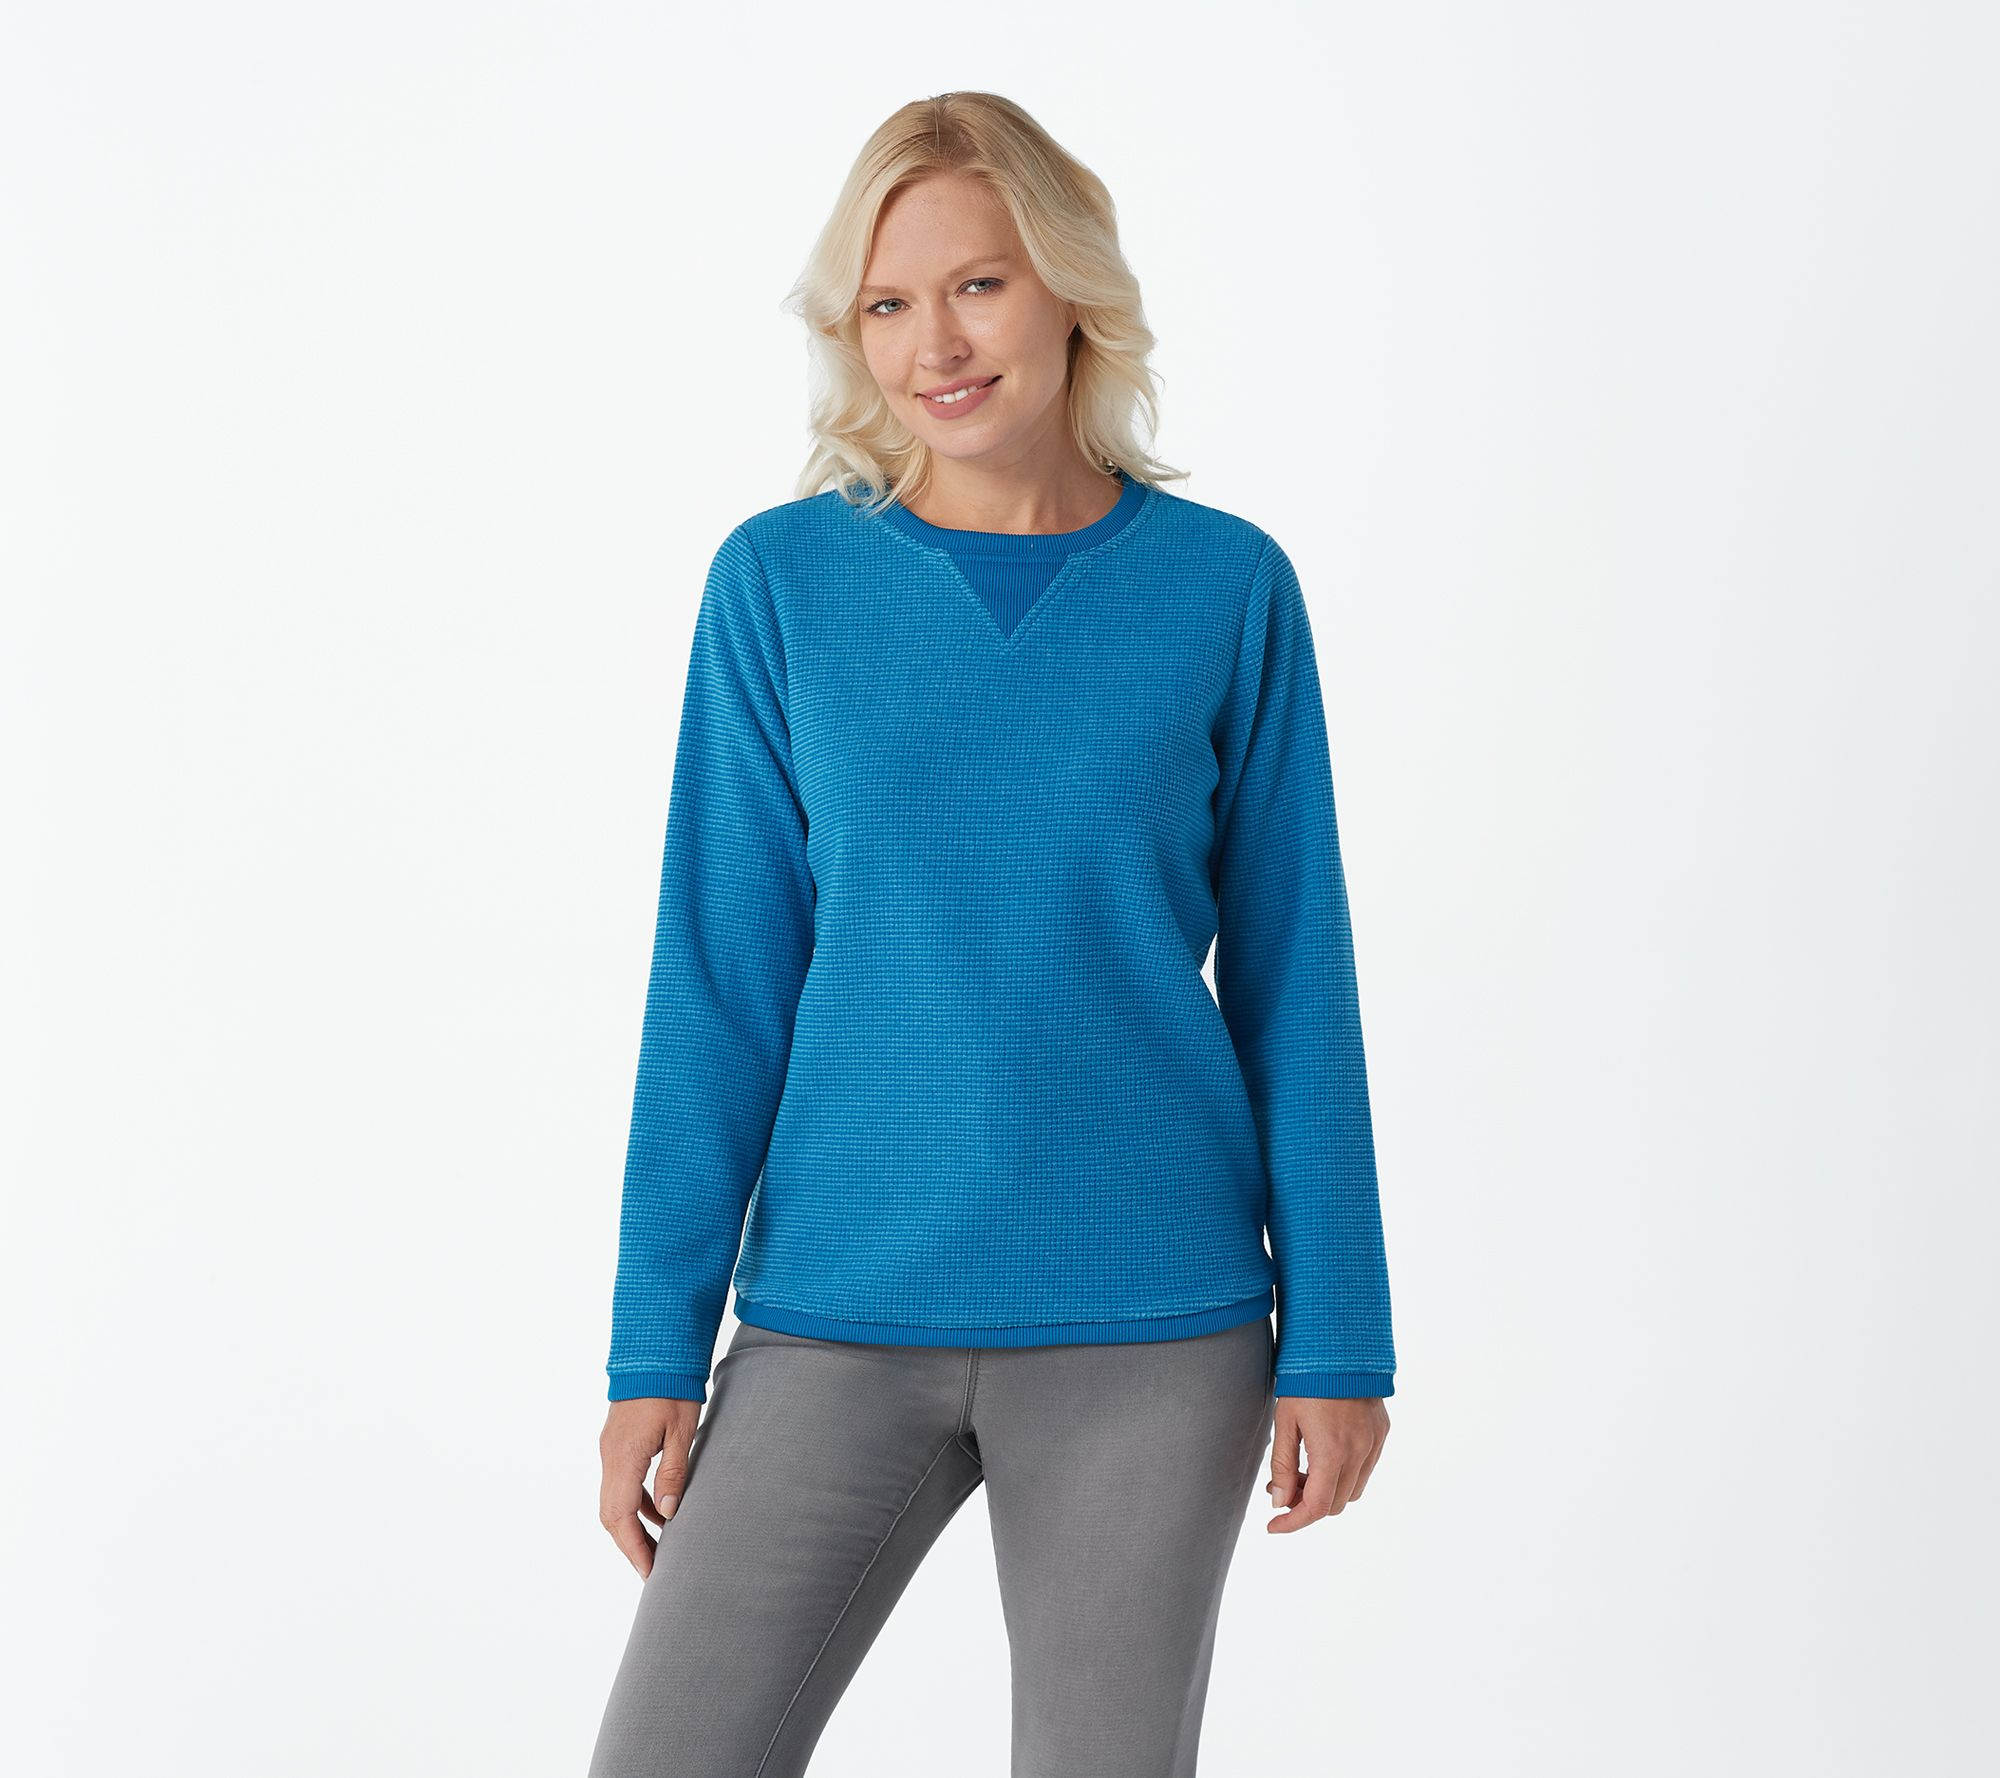 Denim & Co. Textured Chenille Sweatshirt - A51240